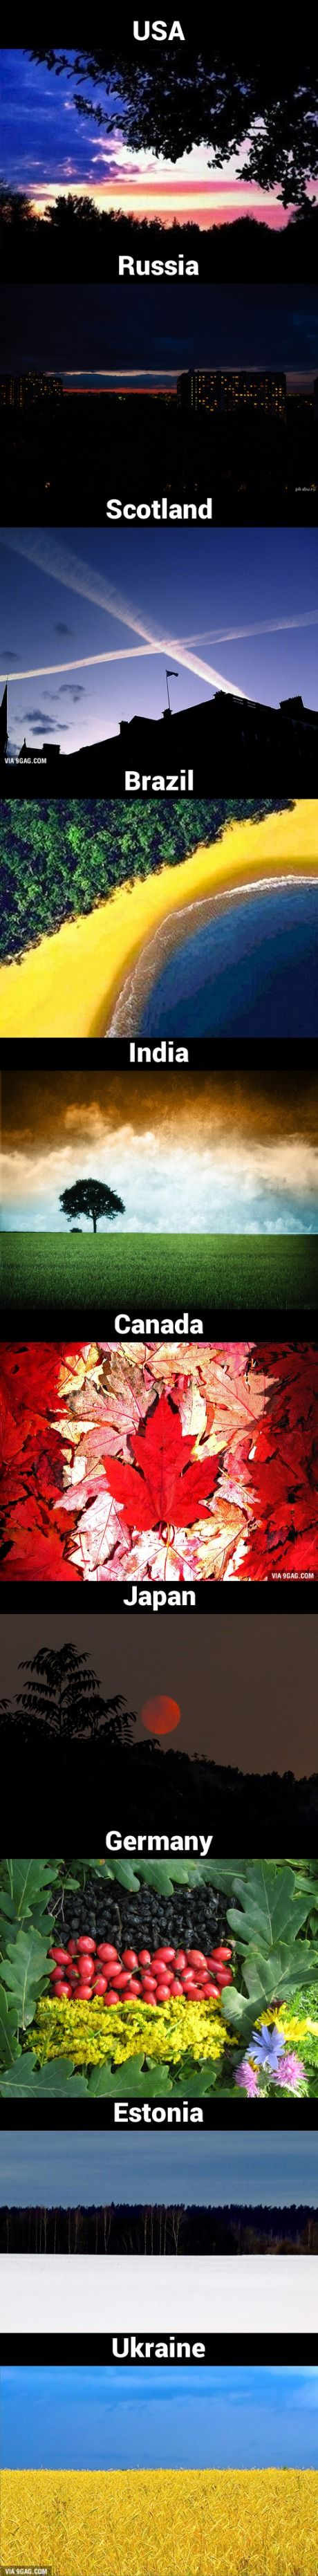 Flags of different countries drawn by nature